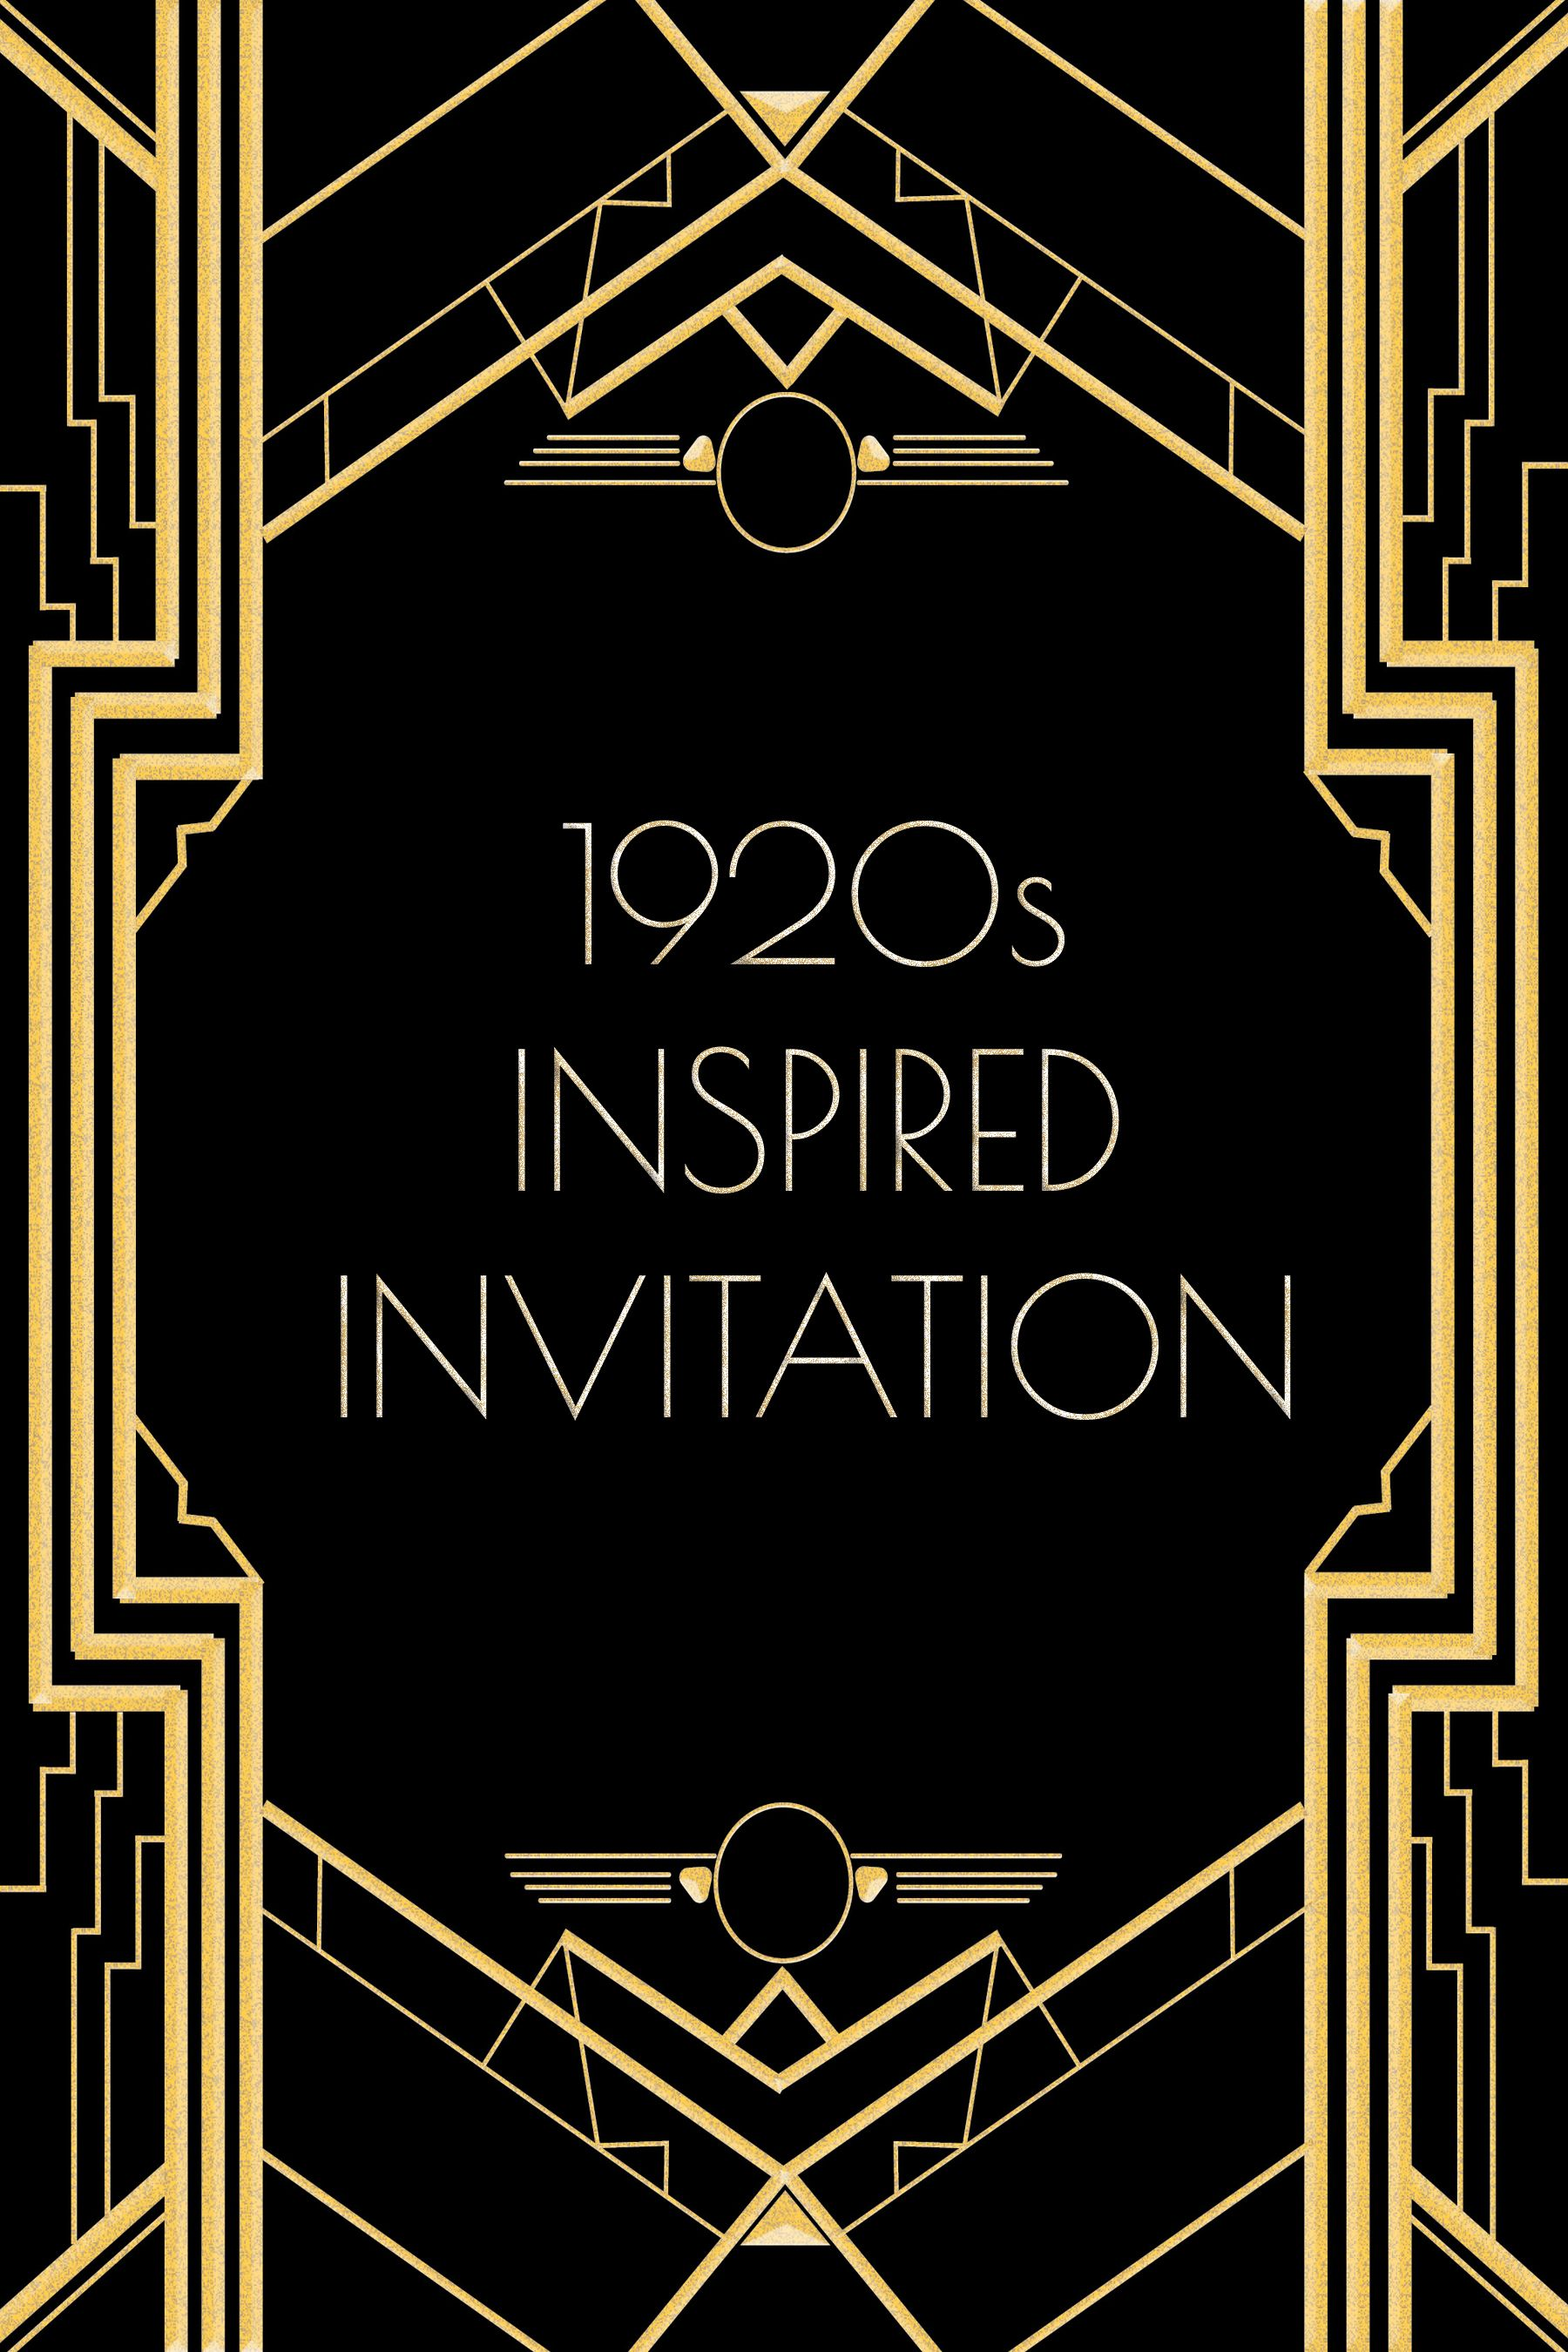 20s years cabaret photos use this 1920s inspired invitation 20s years cabaret photos use this 1920s inspired invitation template for a gatsby stopboris Gallery